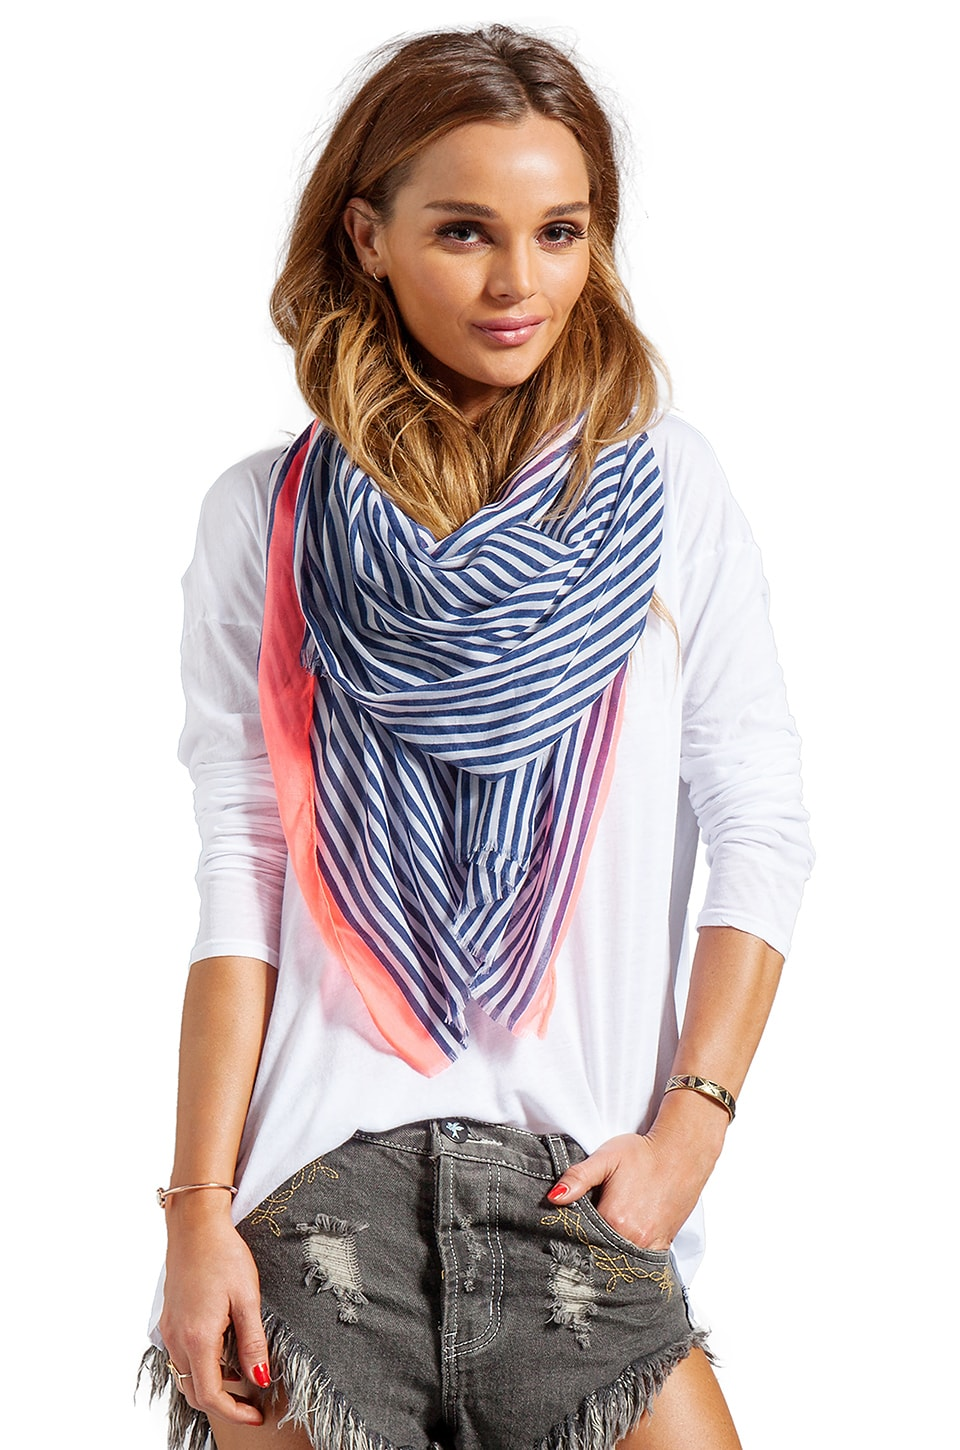 gorjana Zuma Scarf in Navy/White Stripes w/Neon Pink